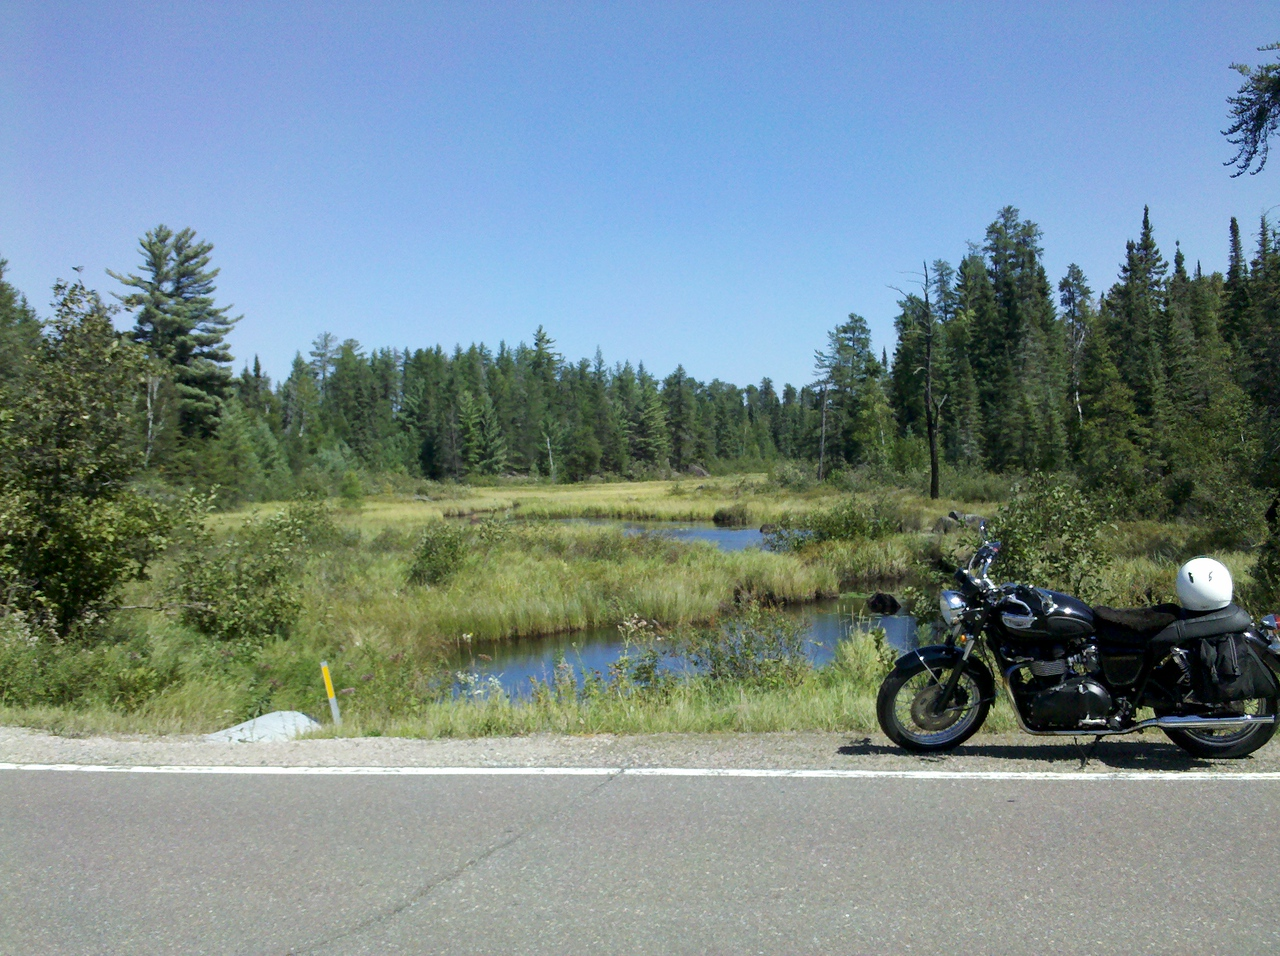 Rt 1 out of Ely in Superior National Forest